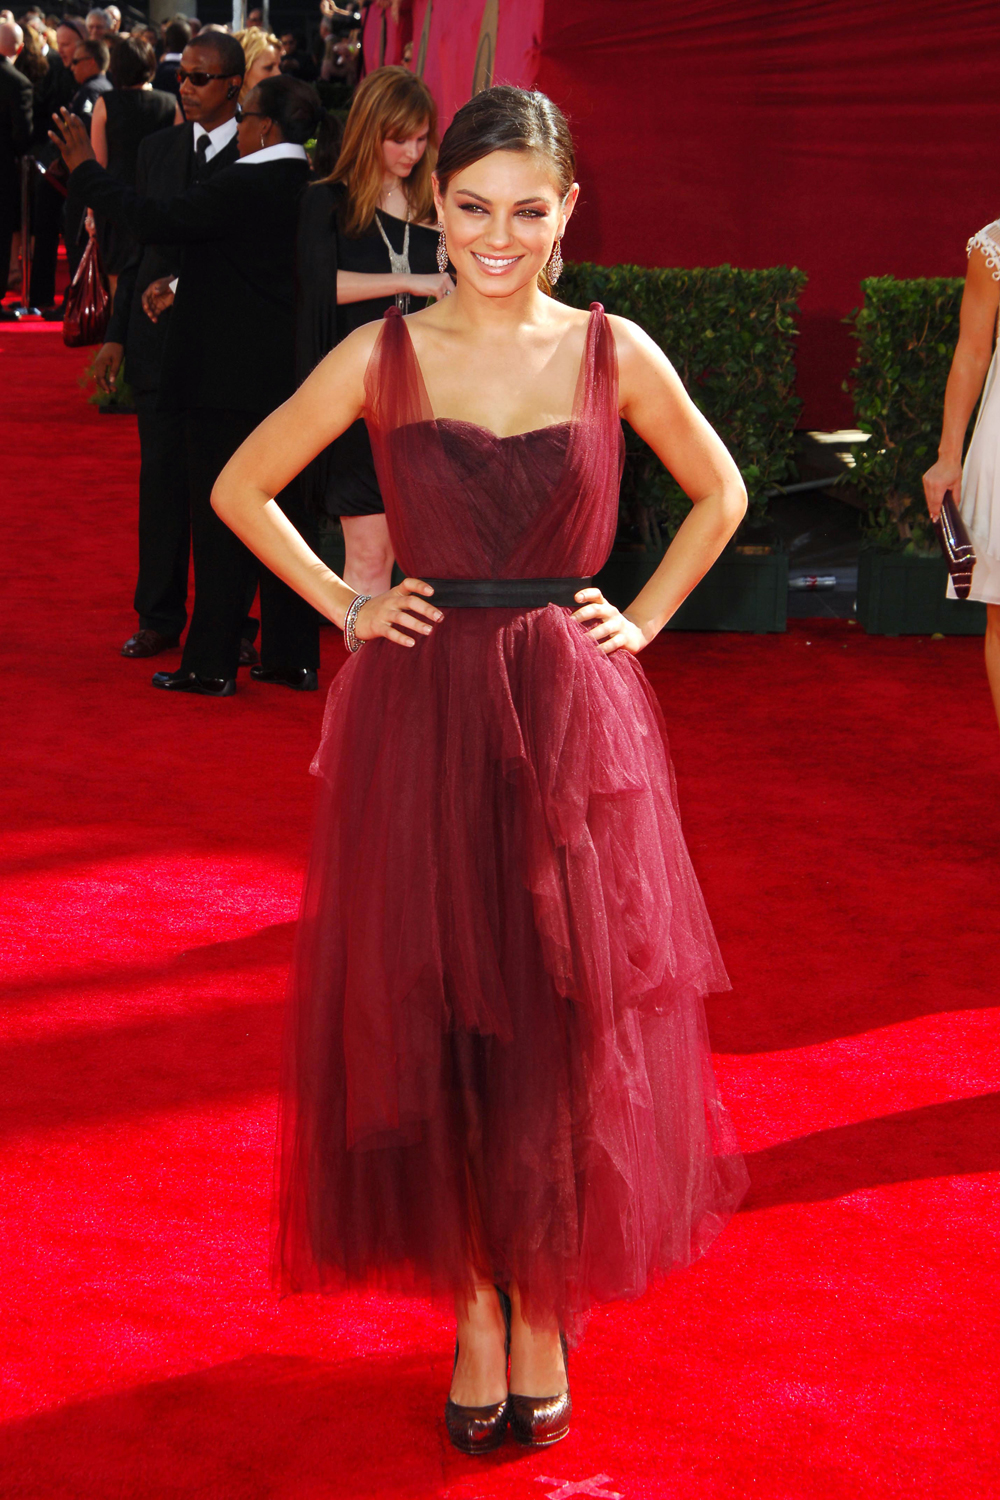 Celebrity dresses mila kunis prom dresses 2009 emmy awards red carpet thecelebritydresses - Dresses from the red carpet ...